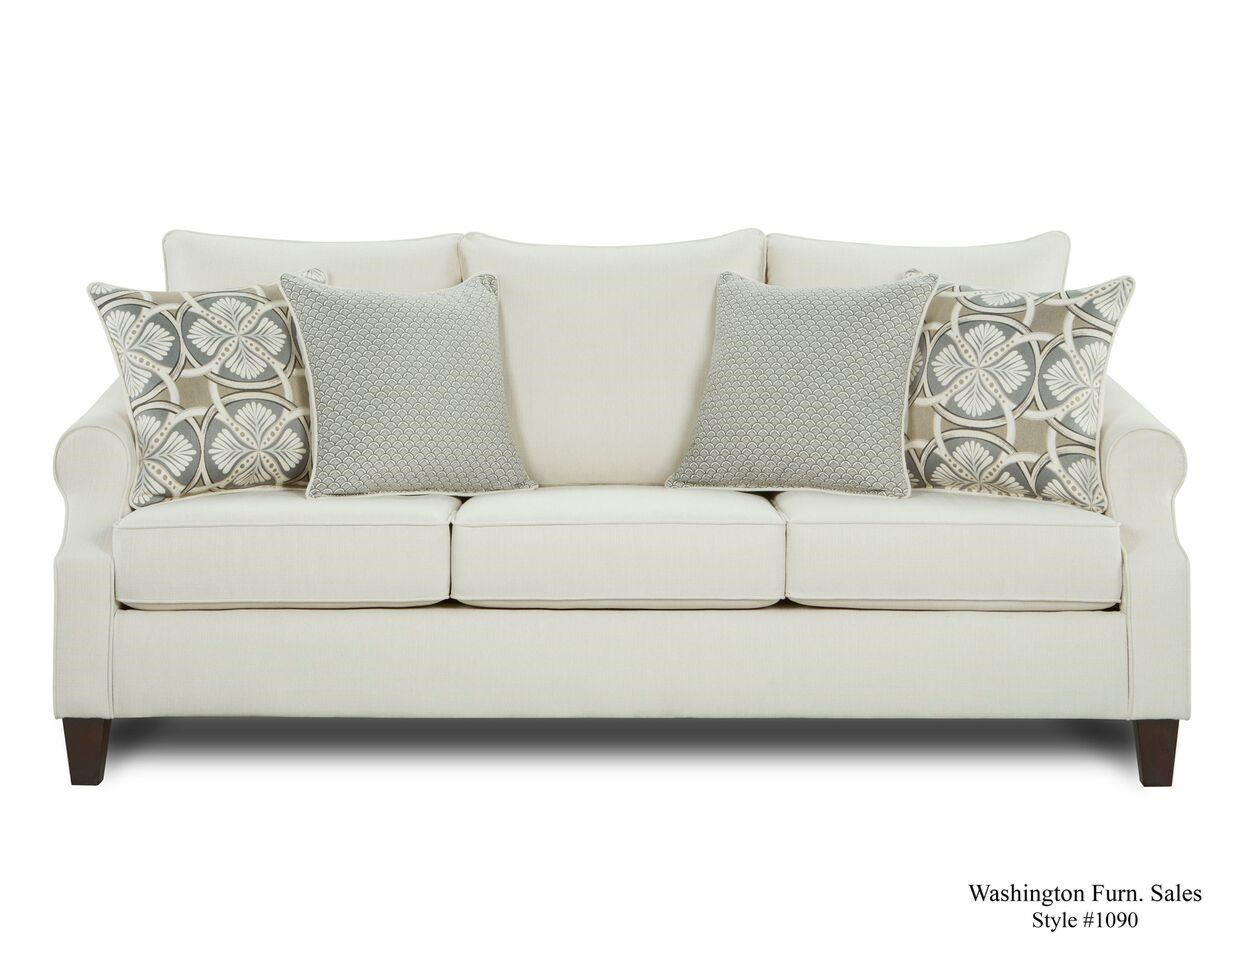 Washington Furniture 1093 Cream Sofa   Item Number: 1093 755